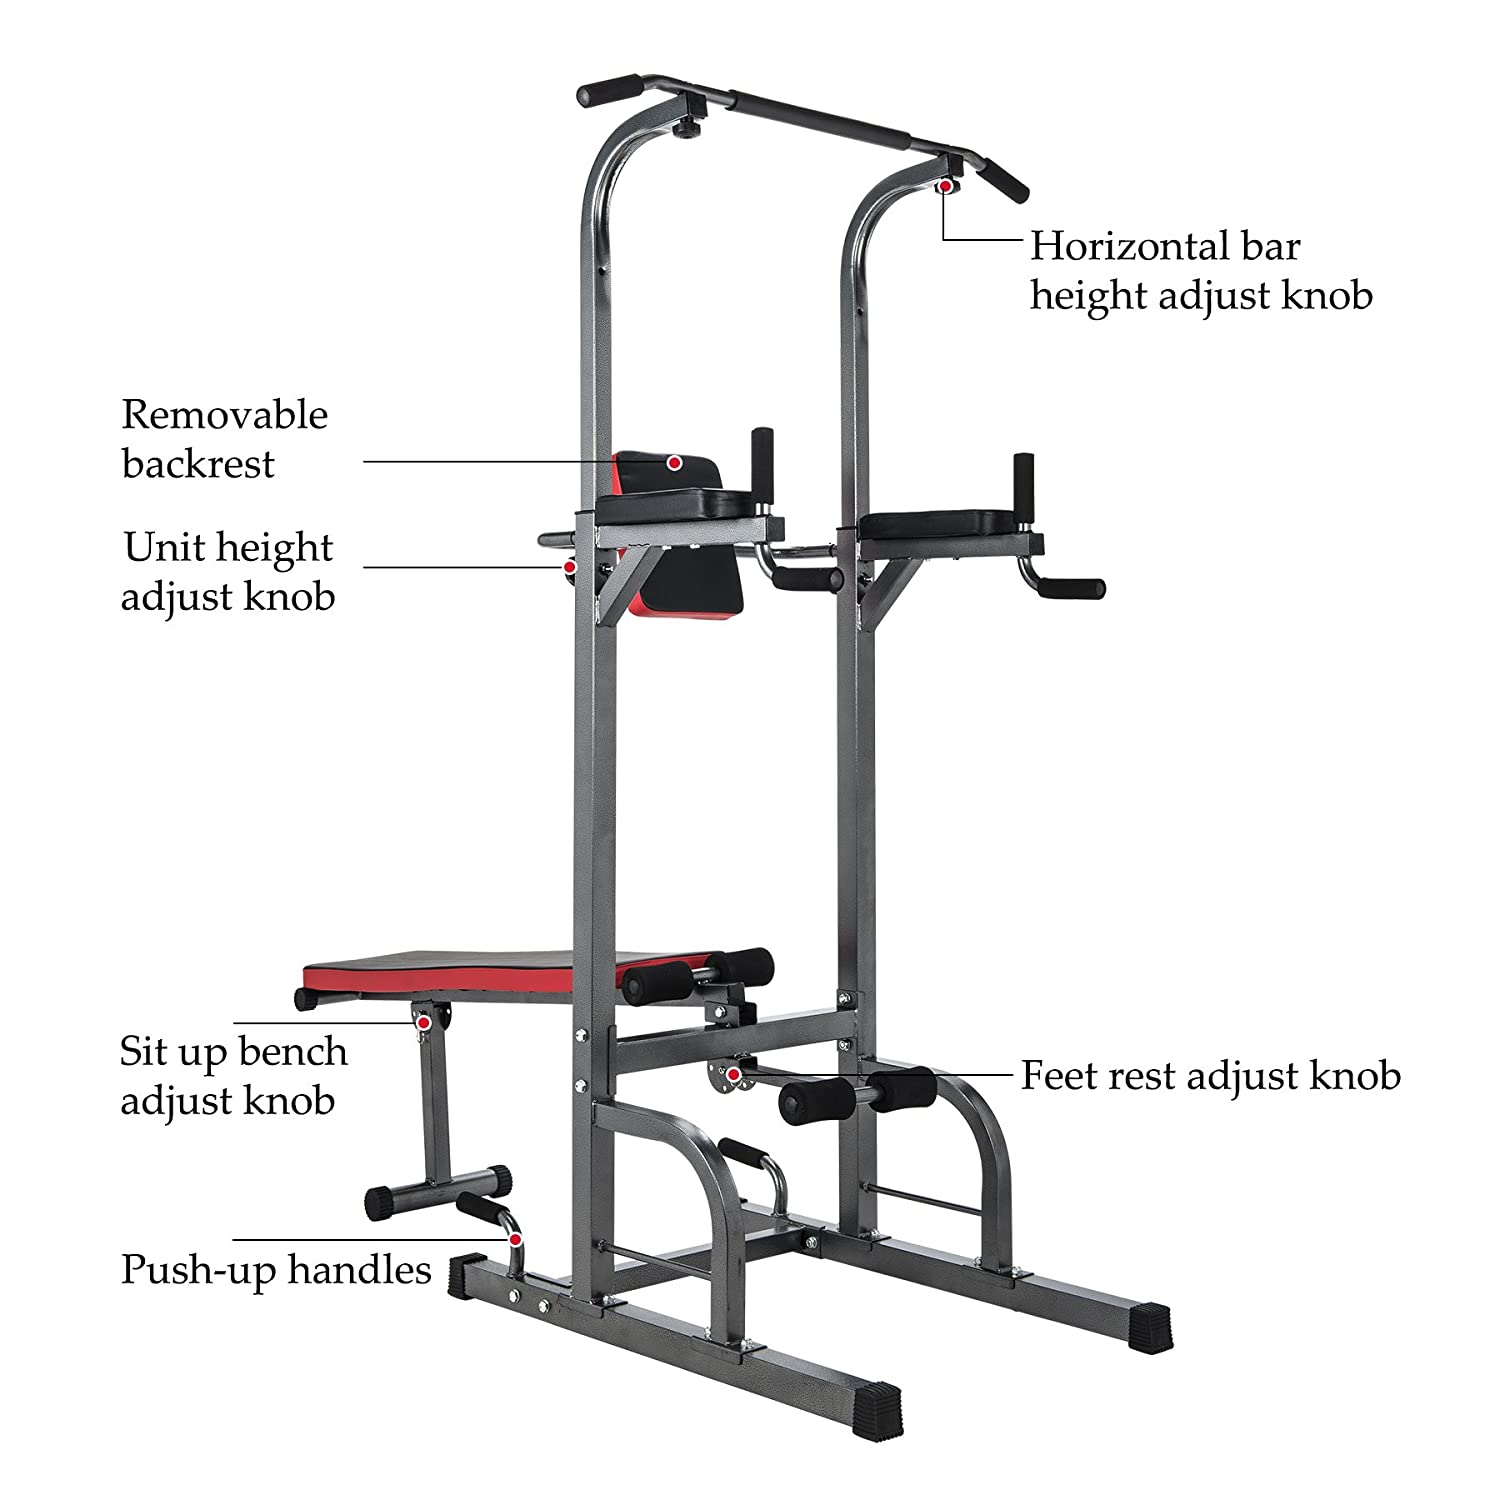 ZELUS Multifunctional Power Tower Workout Pull Up Dip Station Adjustable Height Pull Up Bar Station Tower w Sit up Bench for Indoor Home Gym Fitness Dip Stand